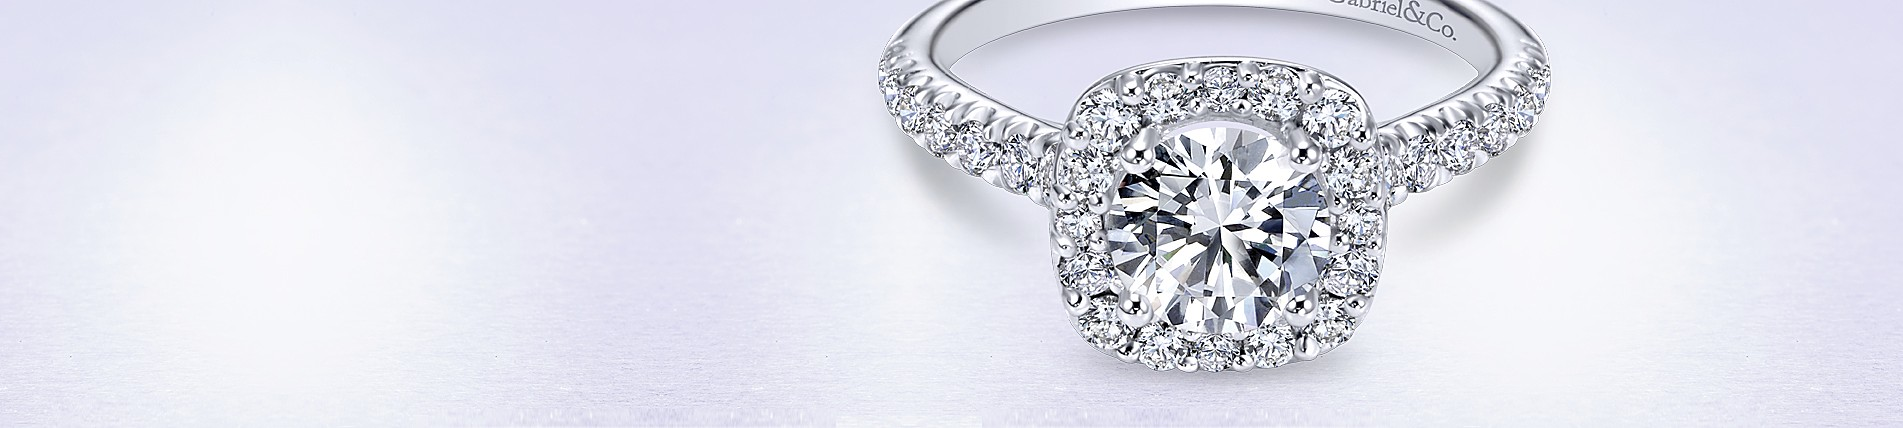 Halo Engagement Rings With Brilliant Round Cut Diamonds - Gabriel & Co